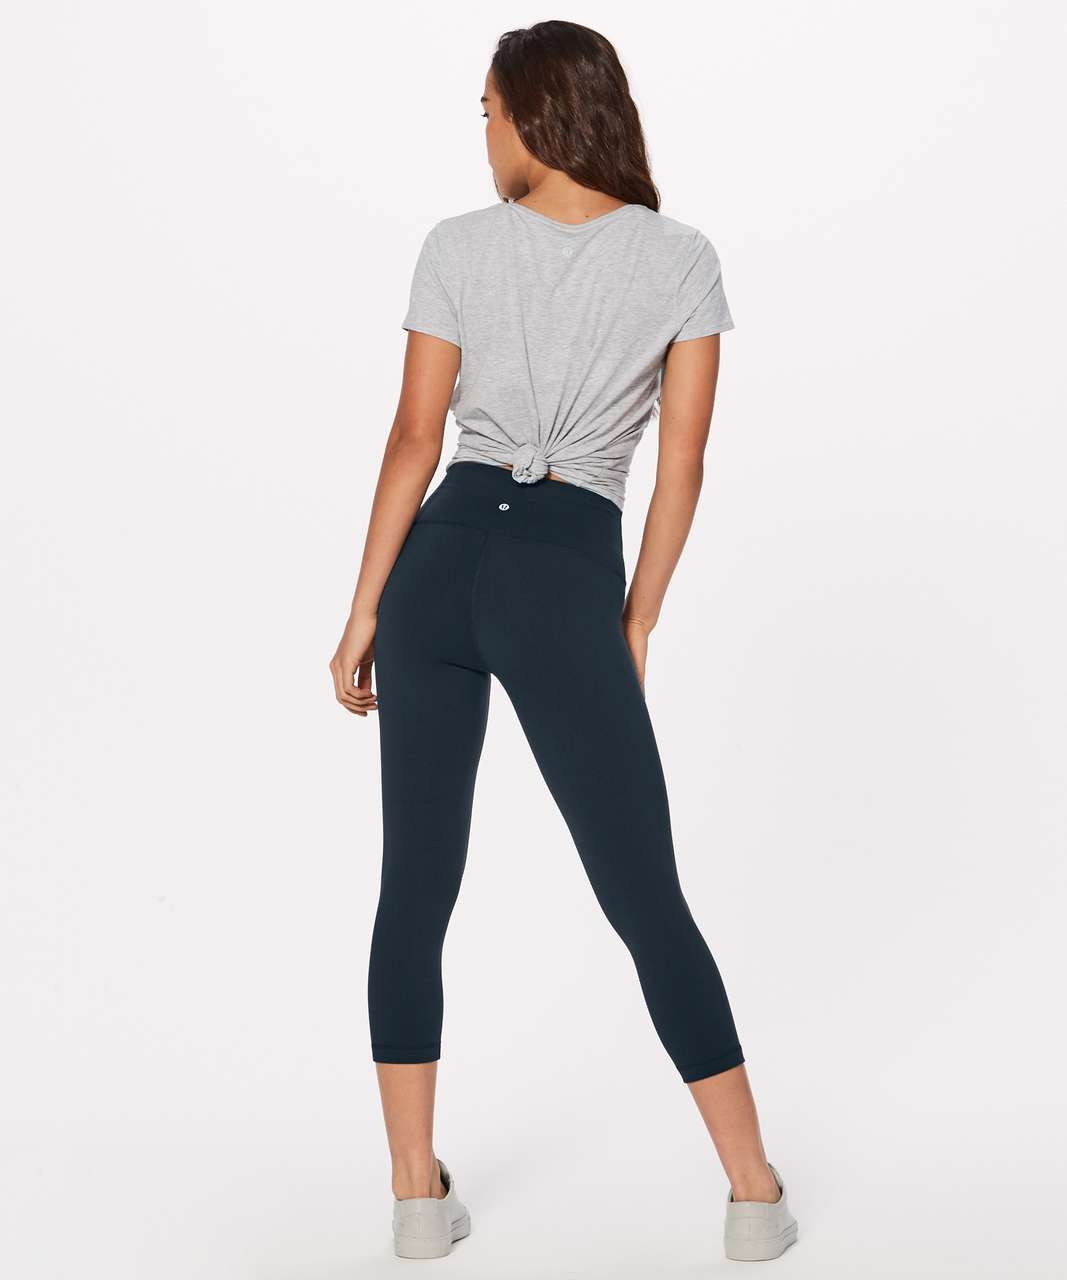 "Lululemon Wunder Under Crop (Hi-Rise) *Full-On Luon 21"" - Nocturnal Teal"